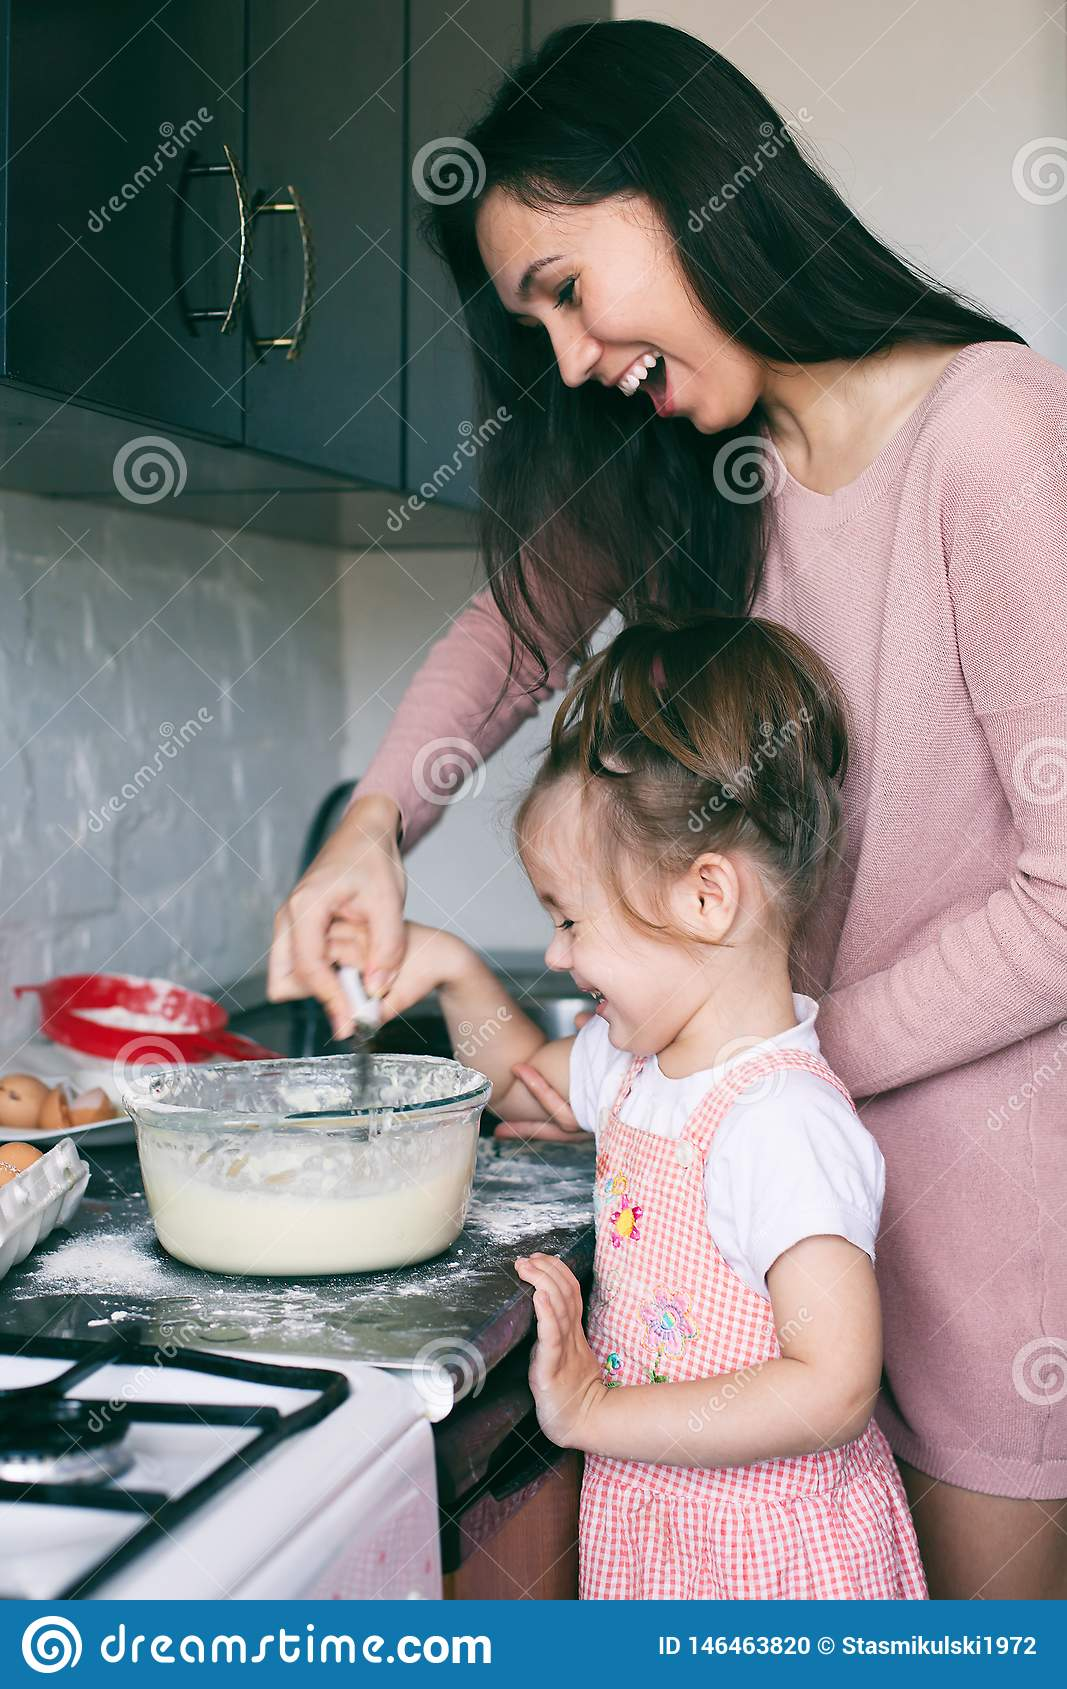 A little cute girl and her mother preparing the dough in the kitchen at home